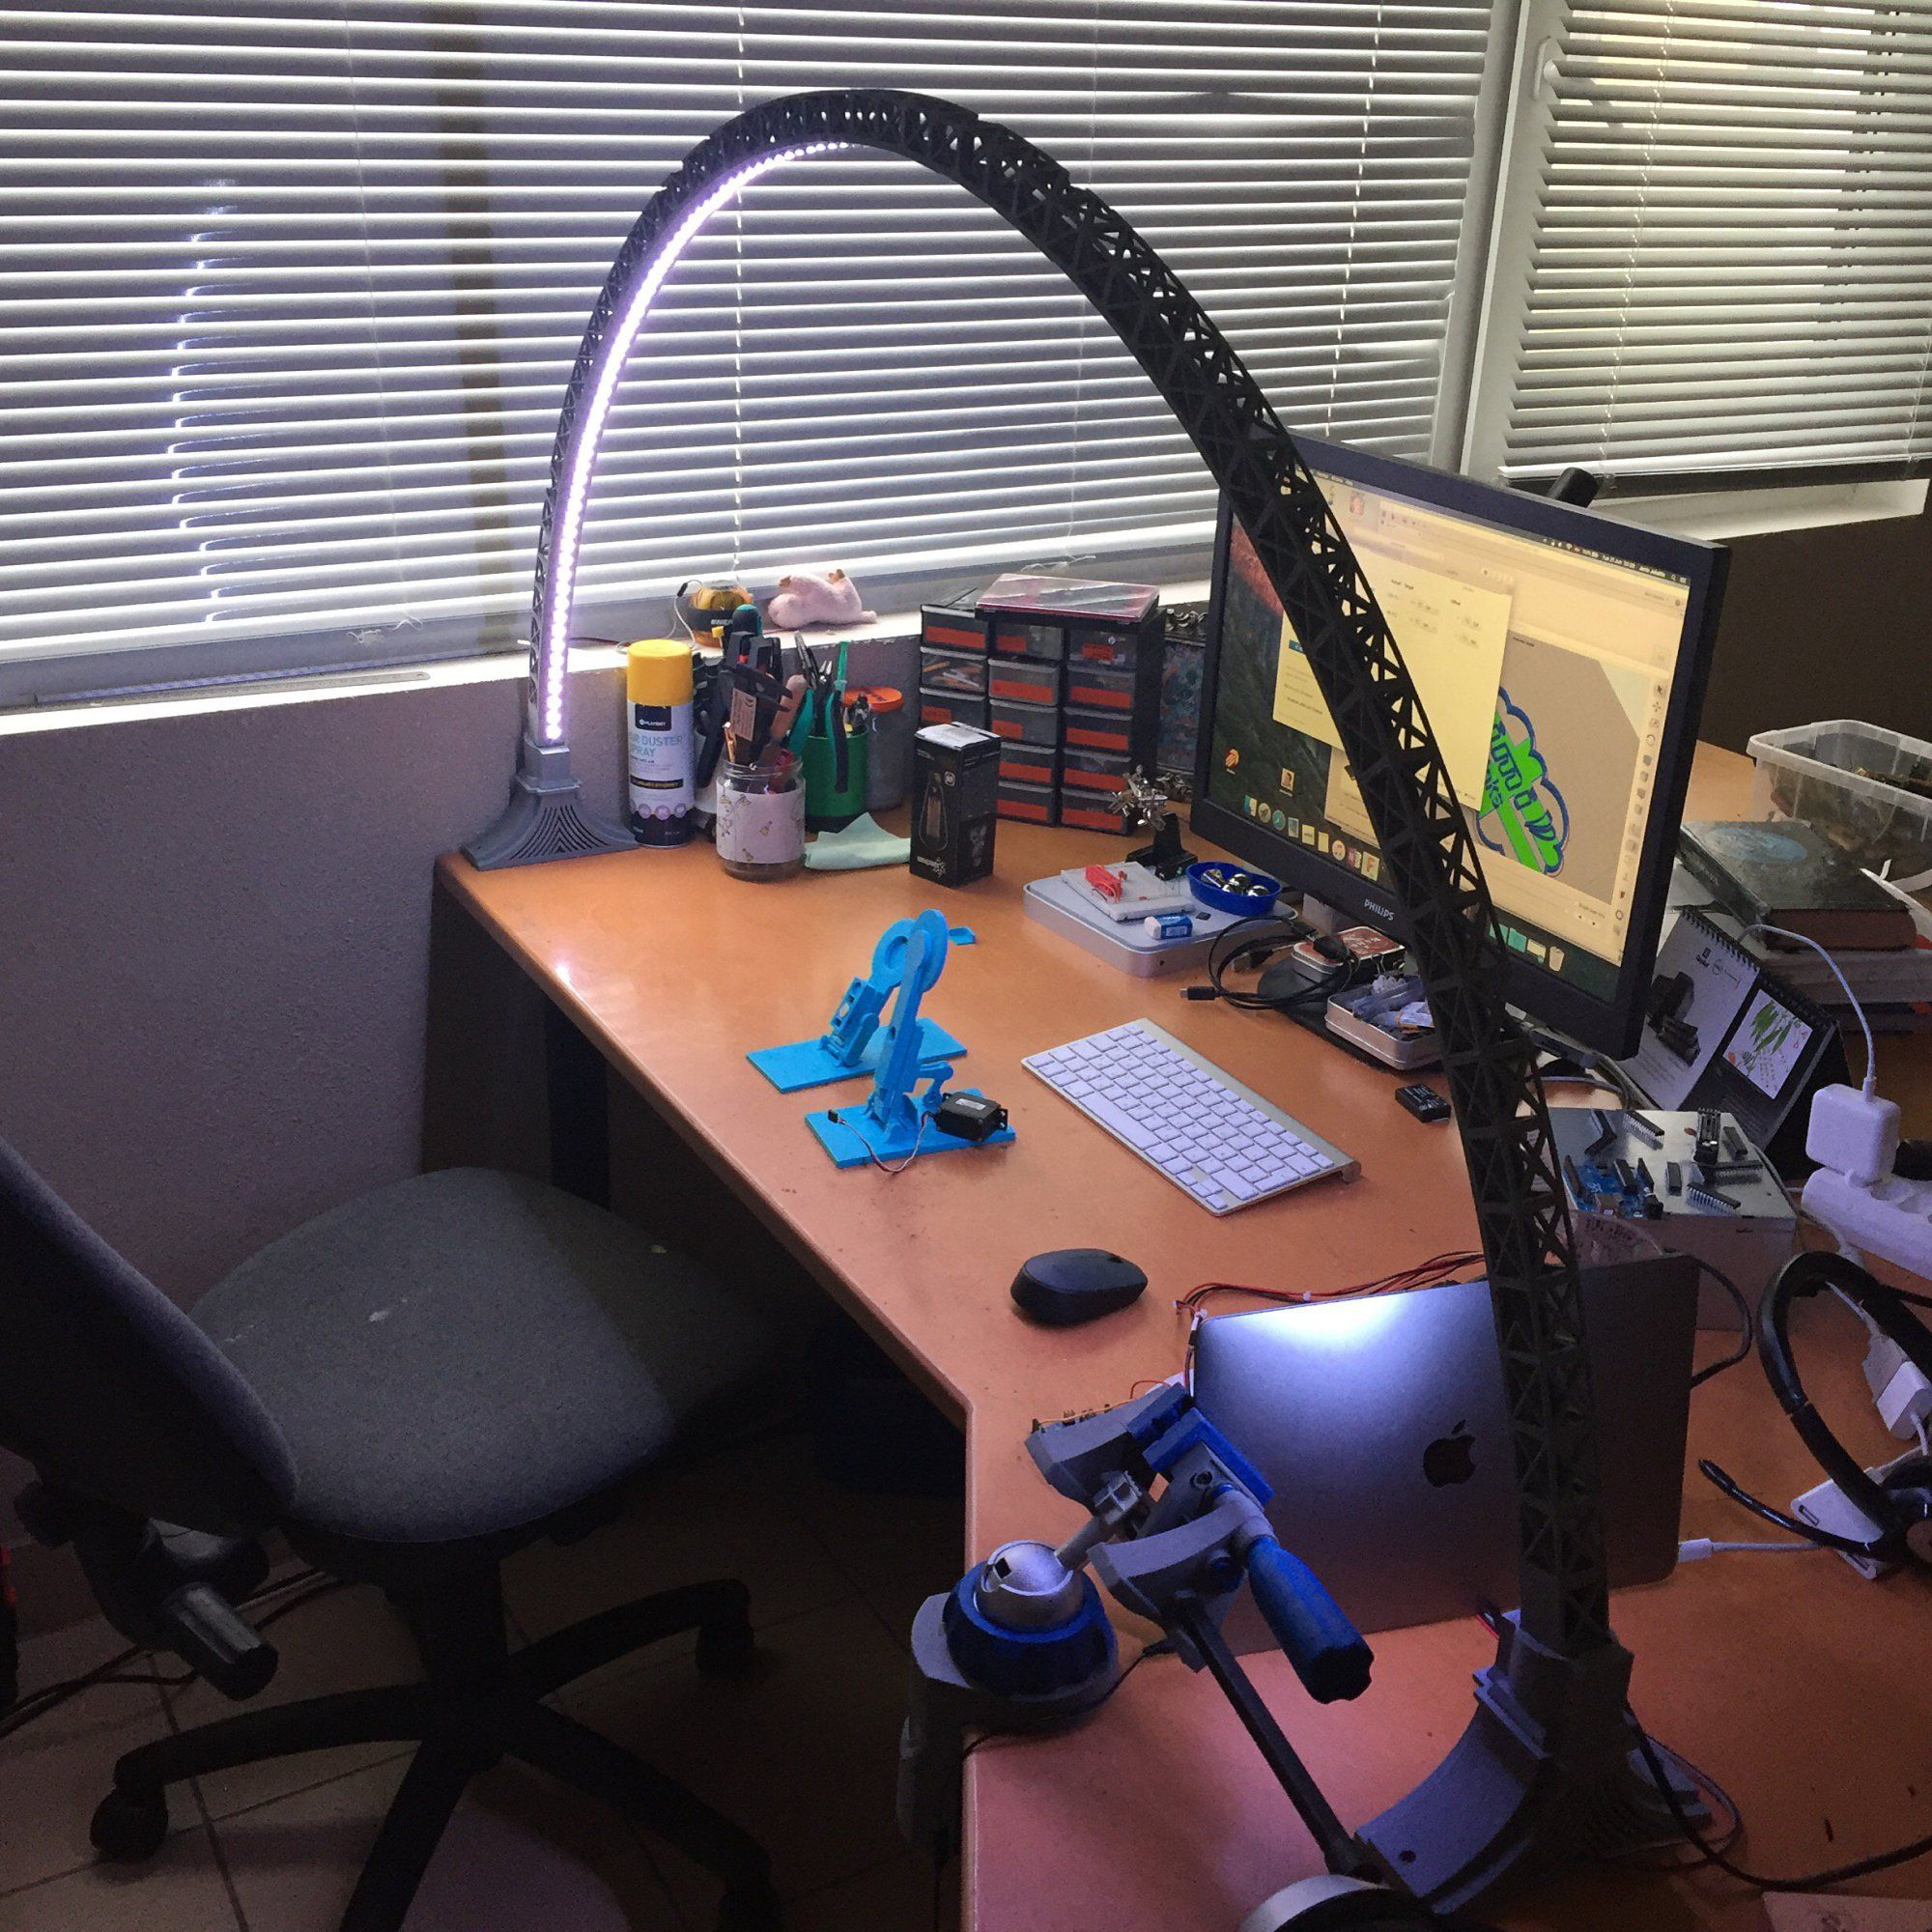 3D Print an Archway of LED Lighting to Illuminate Your Work Table